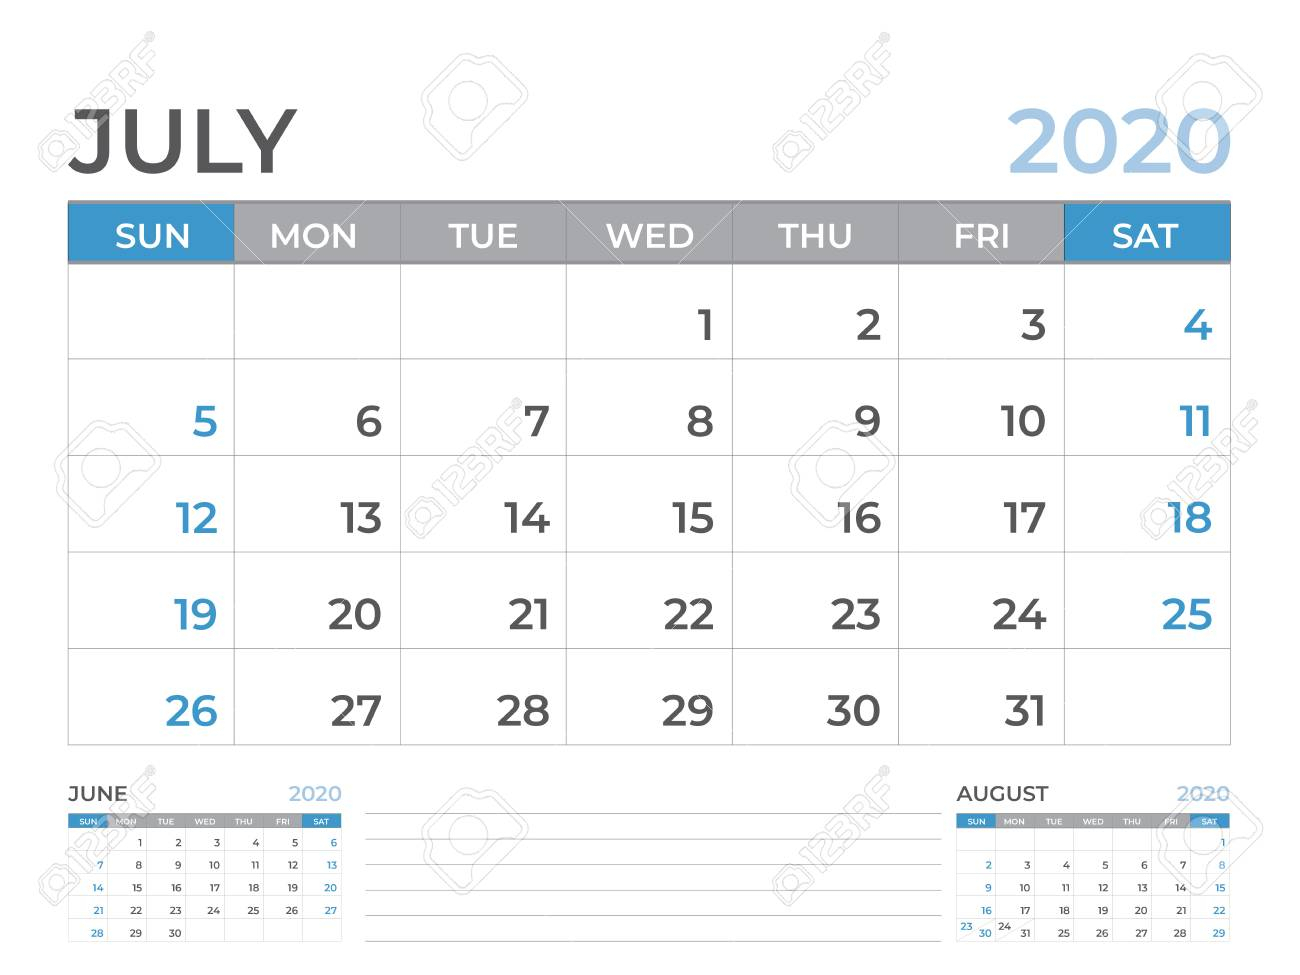 June 2020 Calendar Template, Desk Calendar Layout Size 8 X 6 Inch, Planner  Design, Week Starts On Sunday, Stationery Design, Vector Eps10 with regard to Blank Calendar 6 Weeks Start On Sunday